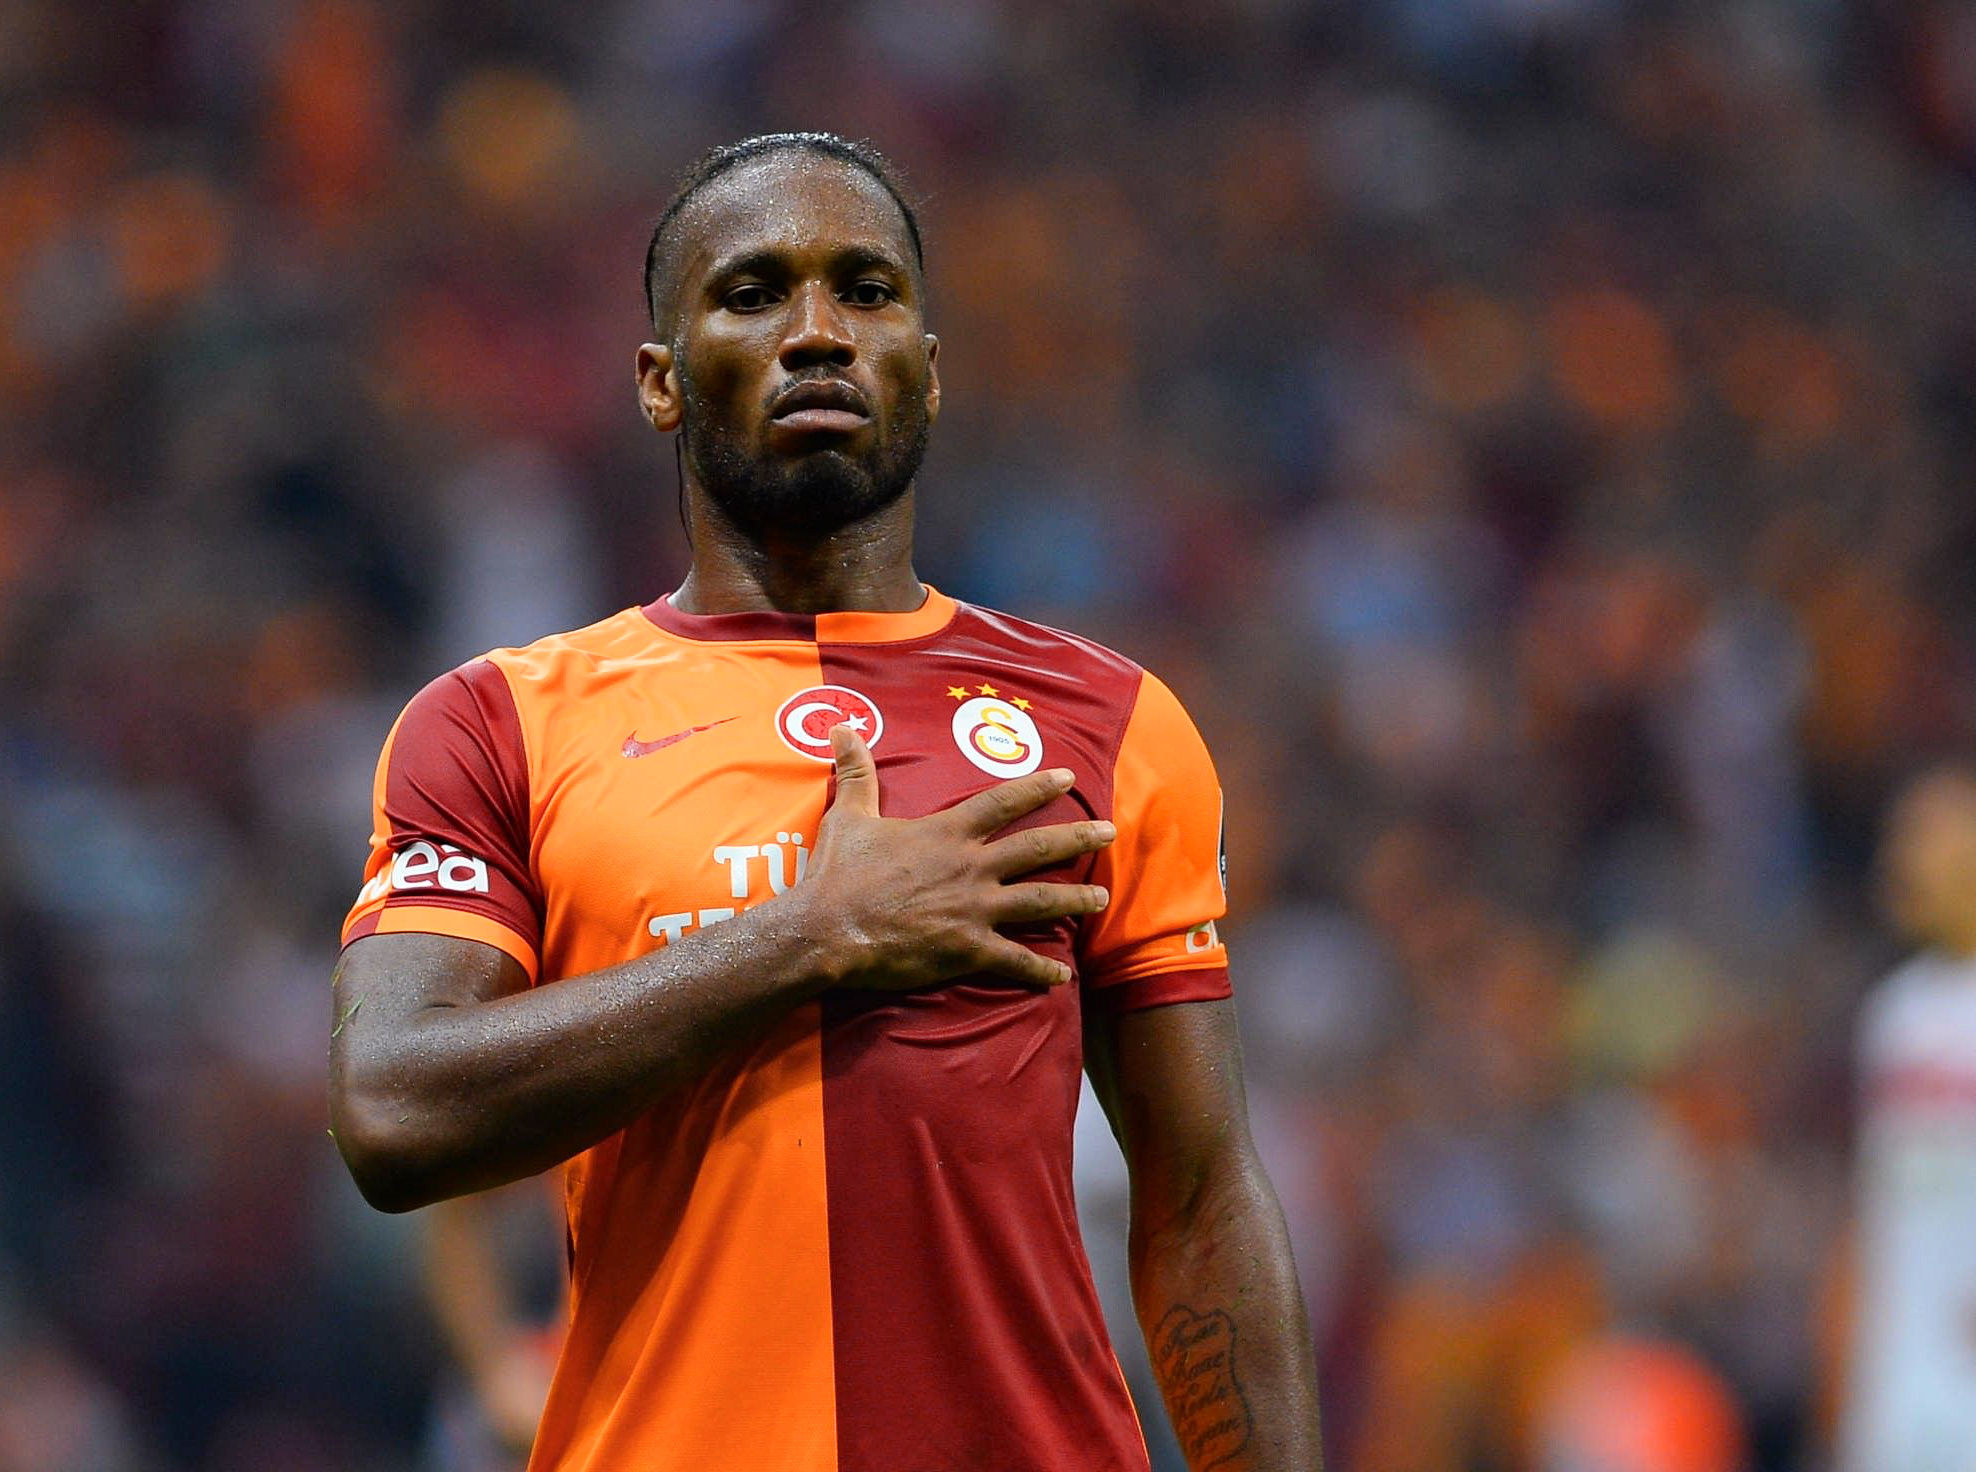 How an ageing Didier Drogba went to Galatasaray and became a legend